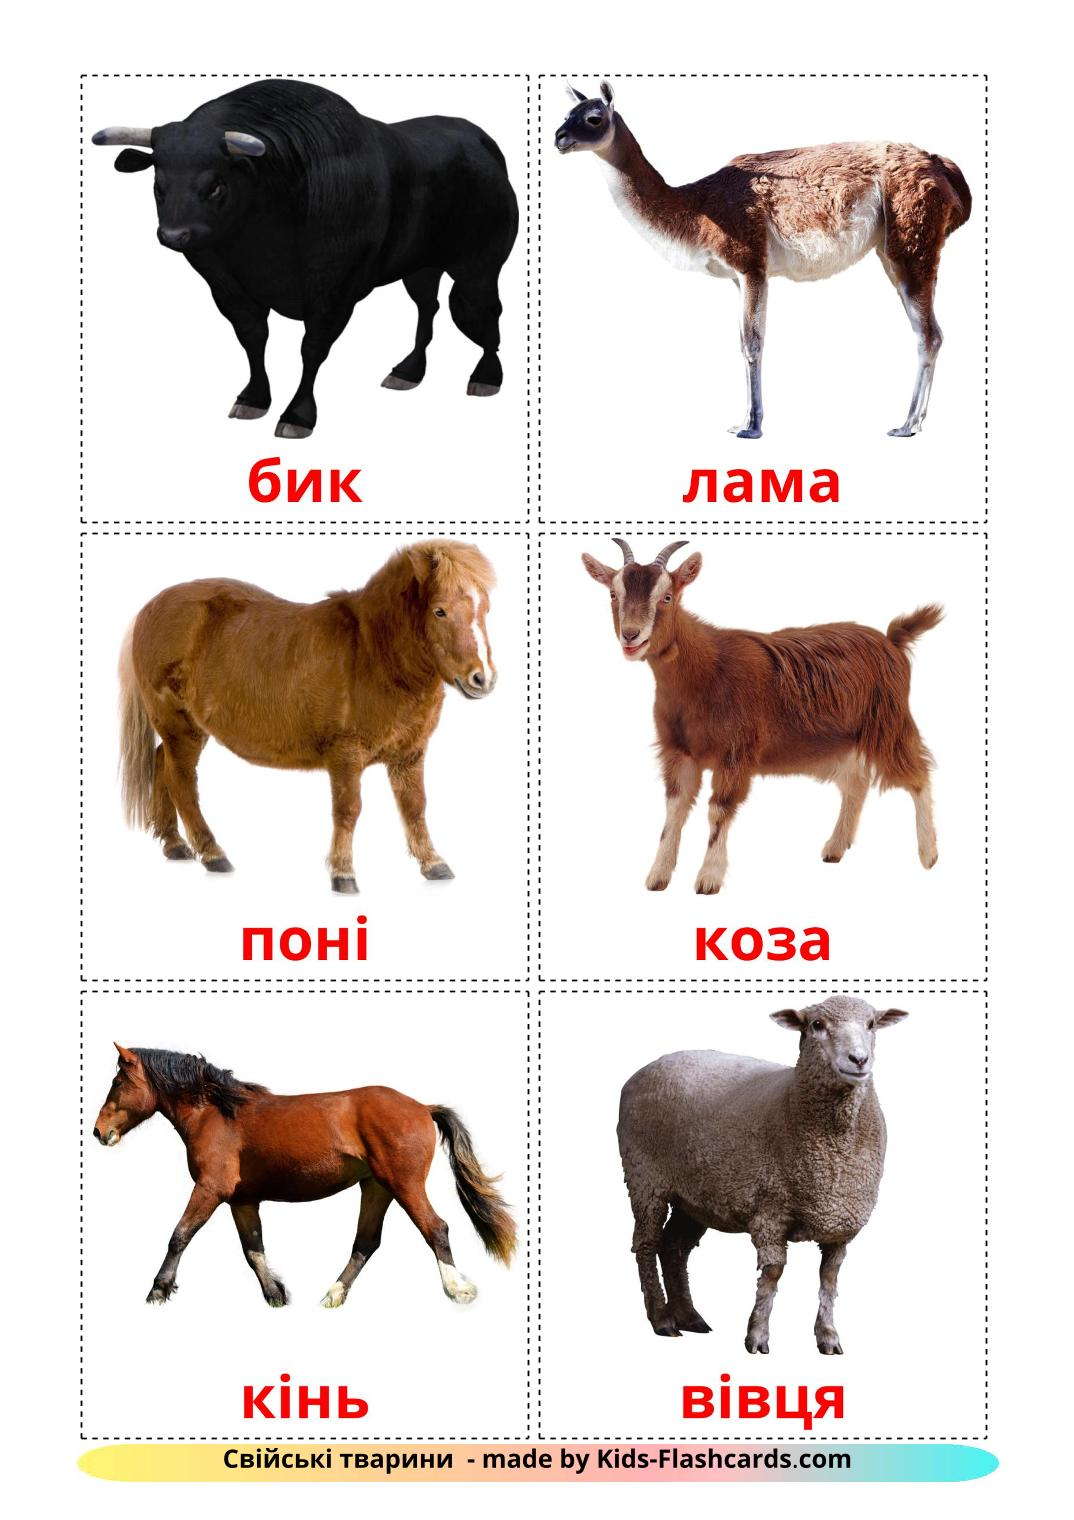 Farm animals - 15 Free Printable ukrainian Flashcards